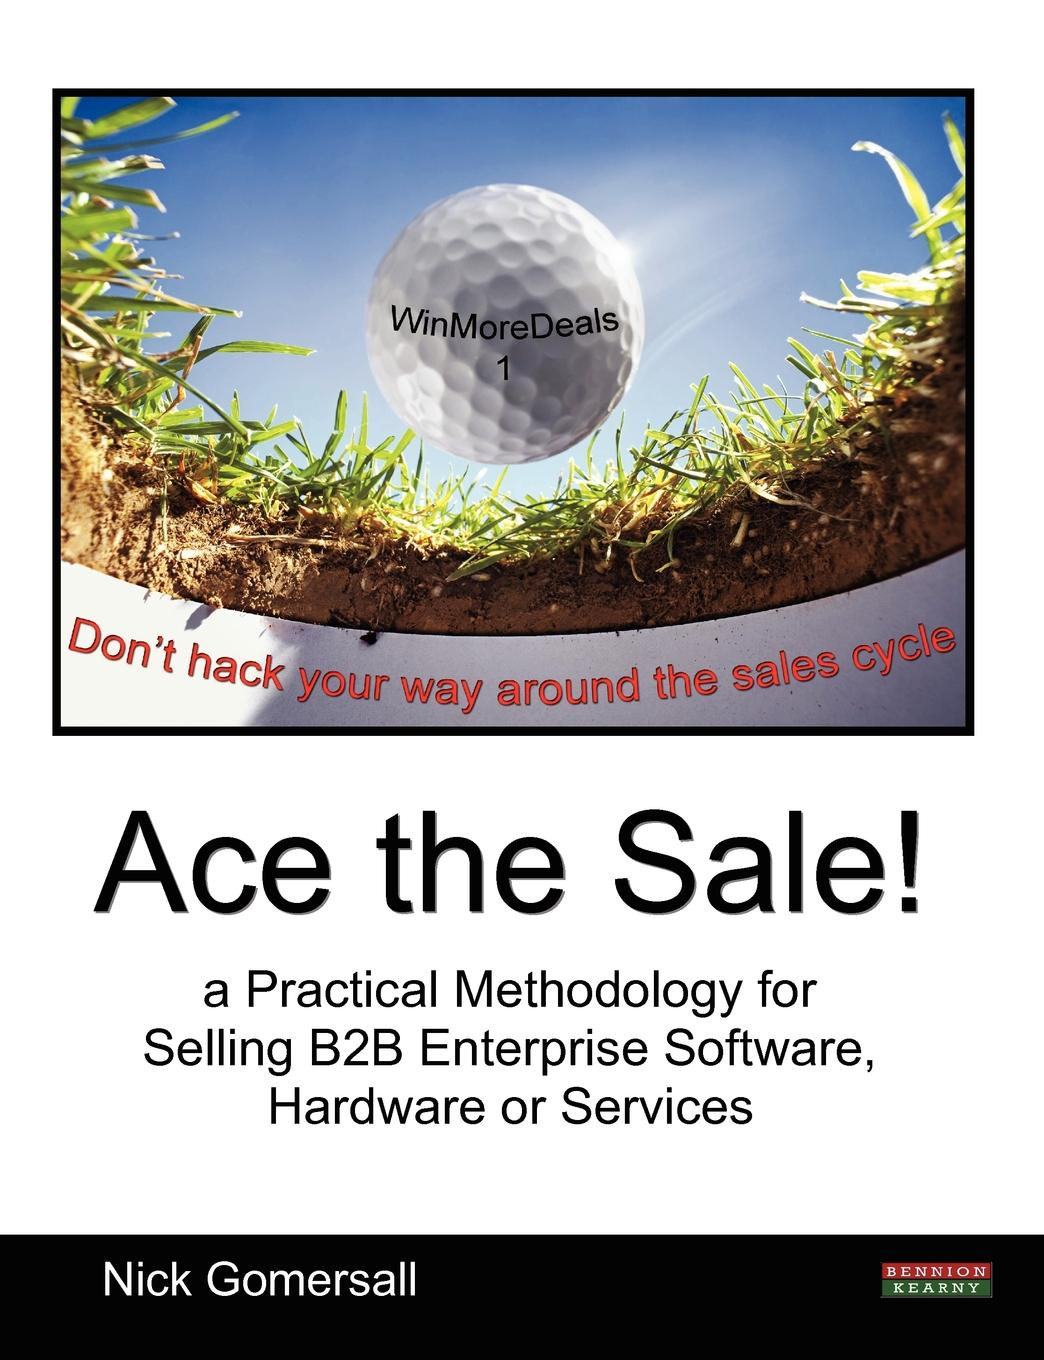 Nick Gomersall Ace the Sale. a Practical Methodology for Selling B2B Enterprise Software, Hardware or Services брайан трейси be a sales superstar 21 great ways to sell more faster easier in tough markets